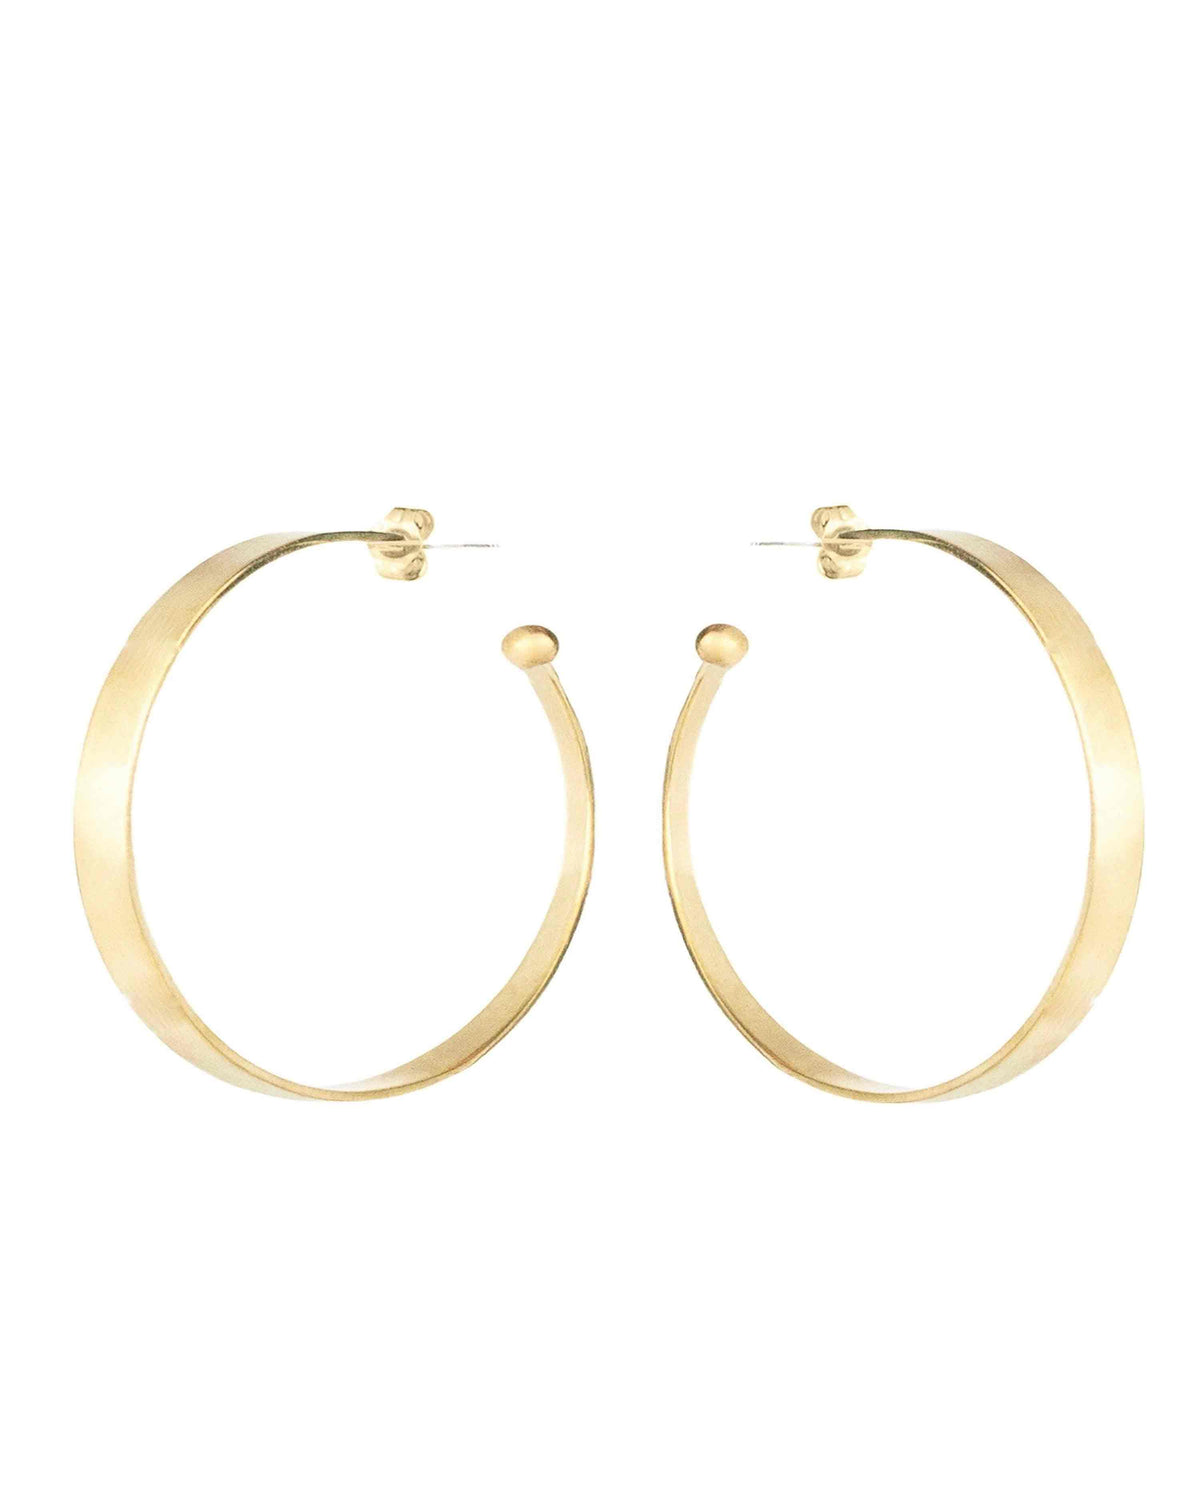 NAKED HOOPS SLIM